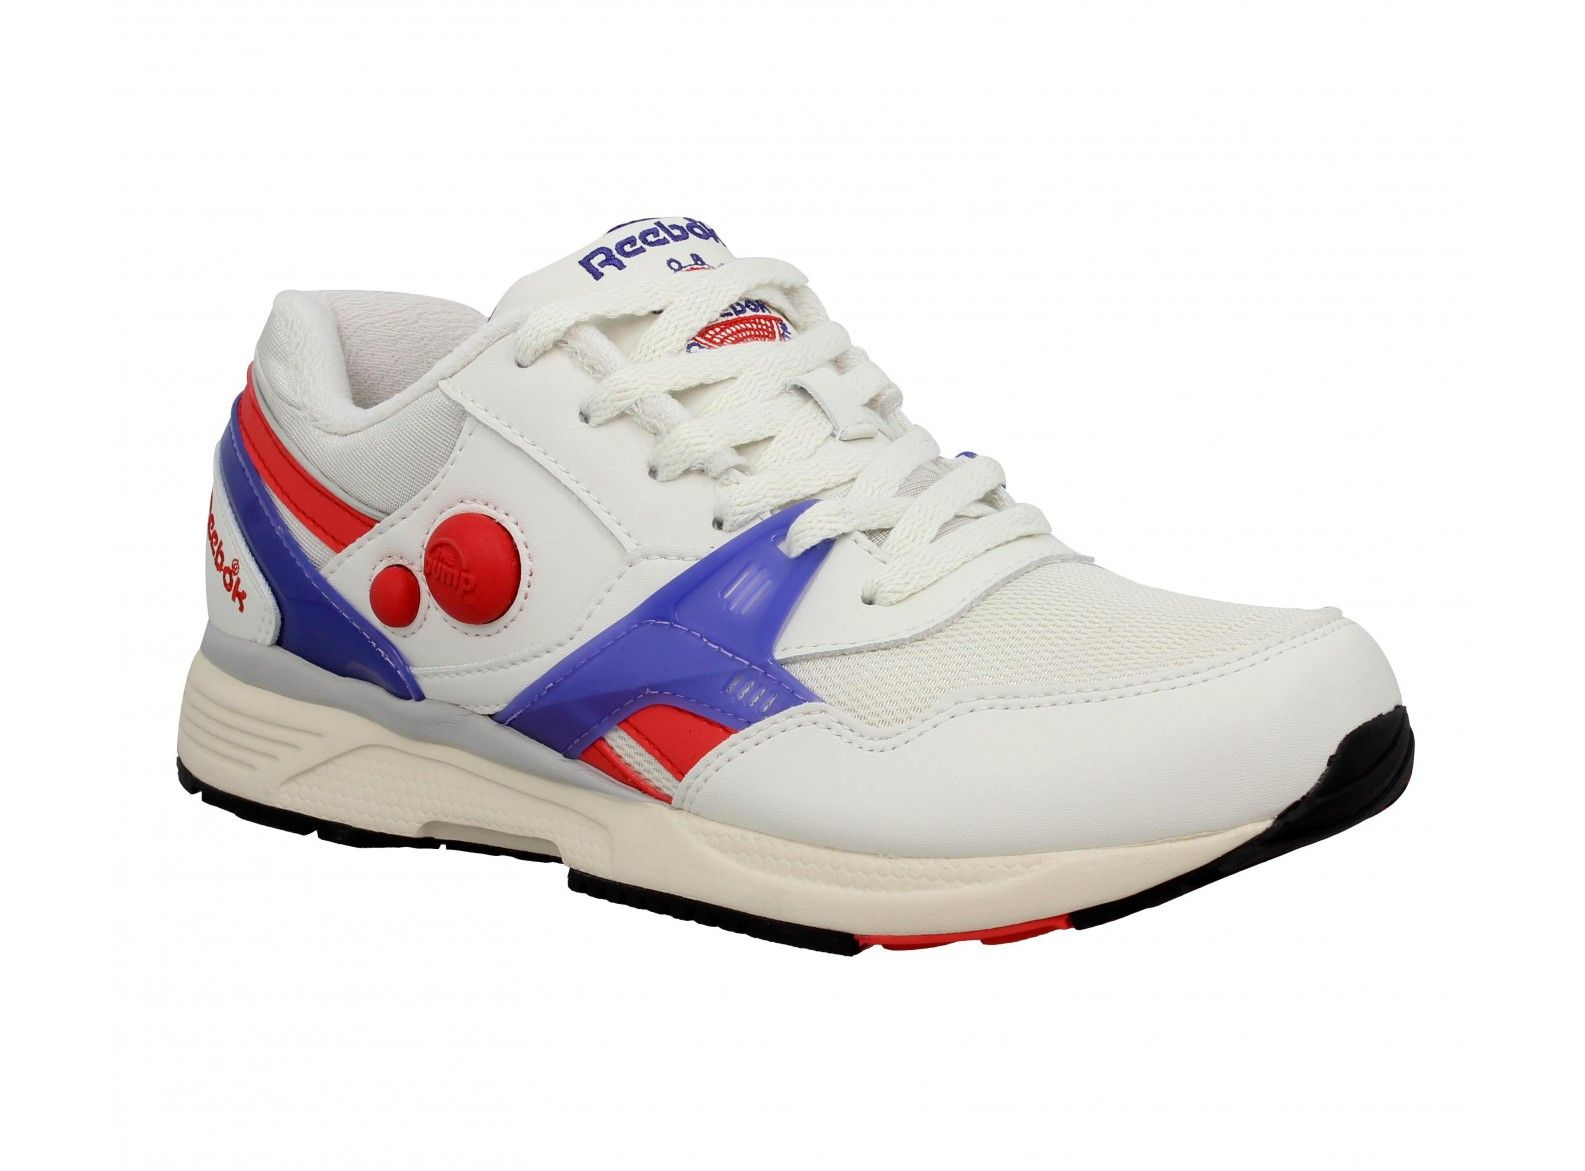 new arrival 5e540 595d4 REEBOK Pump Running Dual Vintage cuir + toile Homme Blanc + Rouge